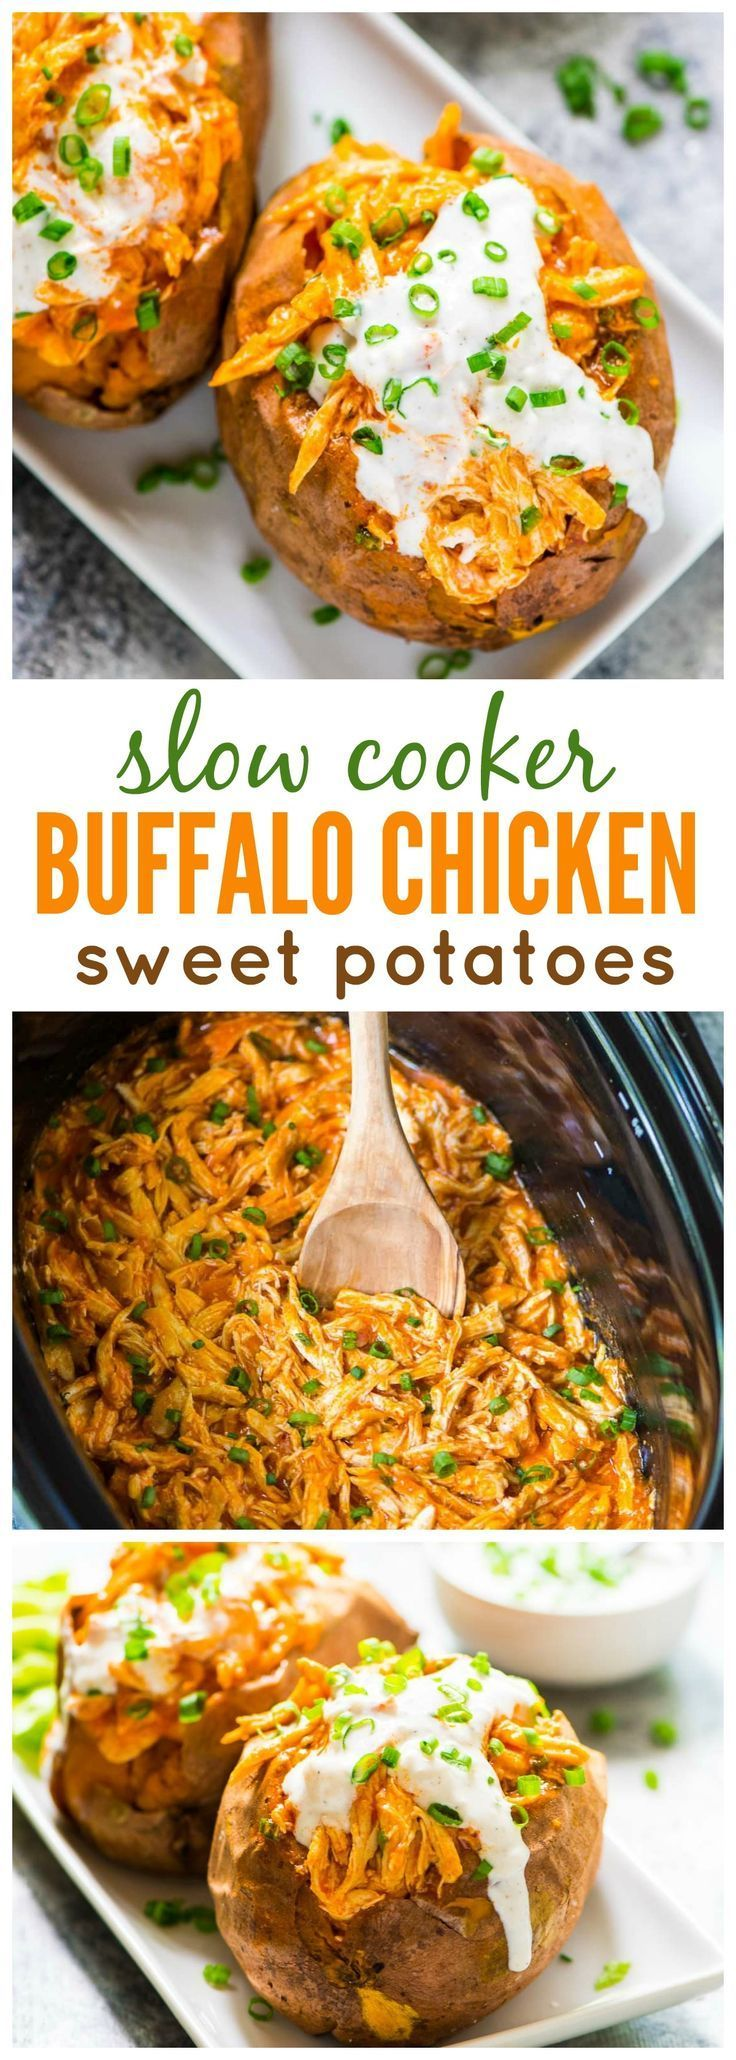 Healthy Slow Cooker Buffalo Chicken Stuffed Sweet Potatoes. Our whole family loves this easy crock pot recipe! Perfect football food for game day and tailgates too. {whole 30, paleo} Recipe at wellplated.com | @wellplated #weightlossquick